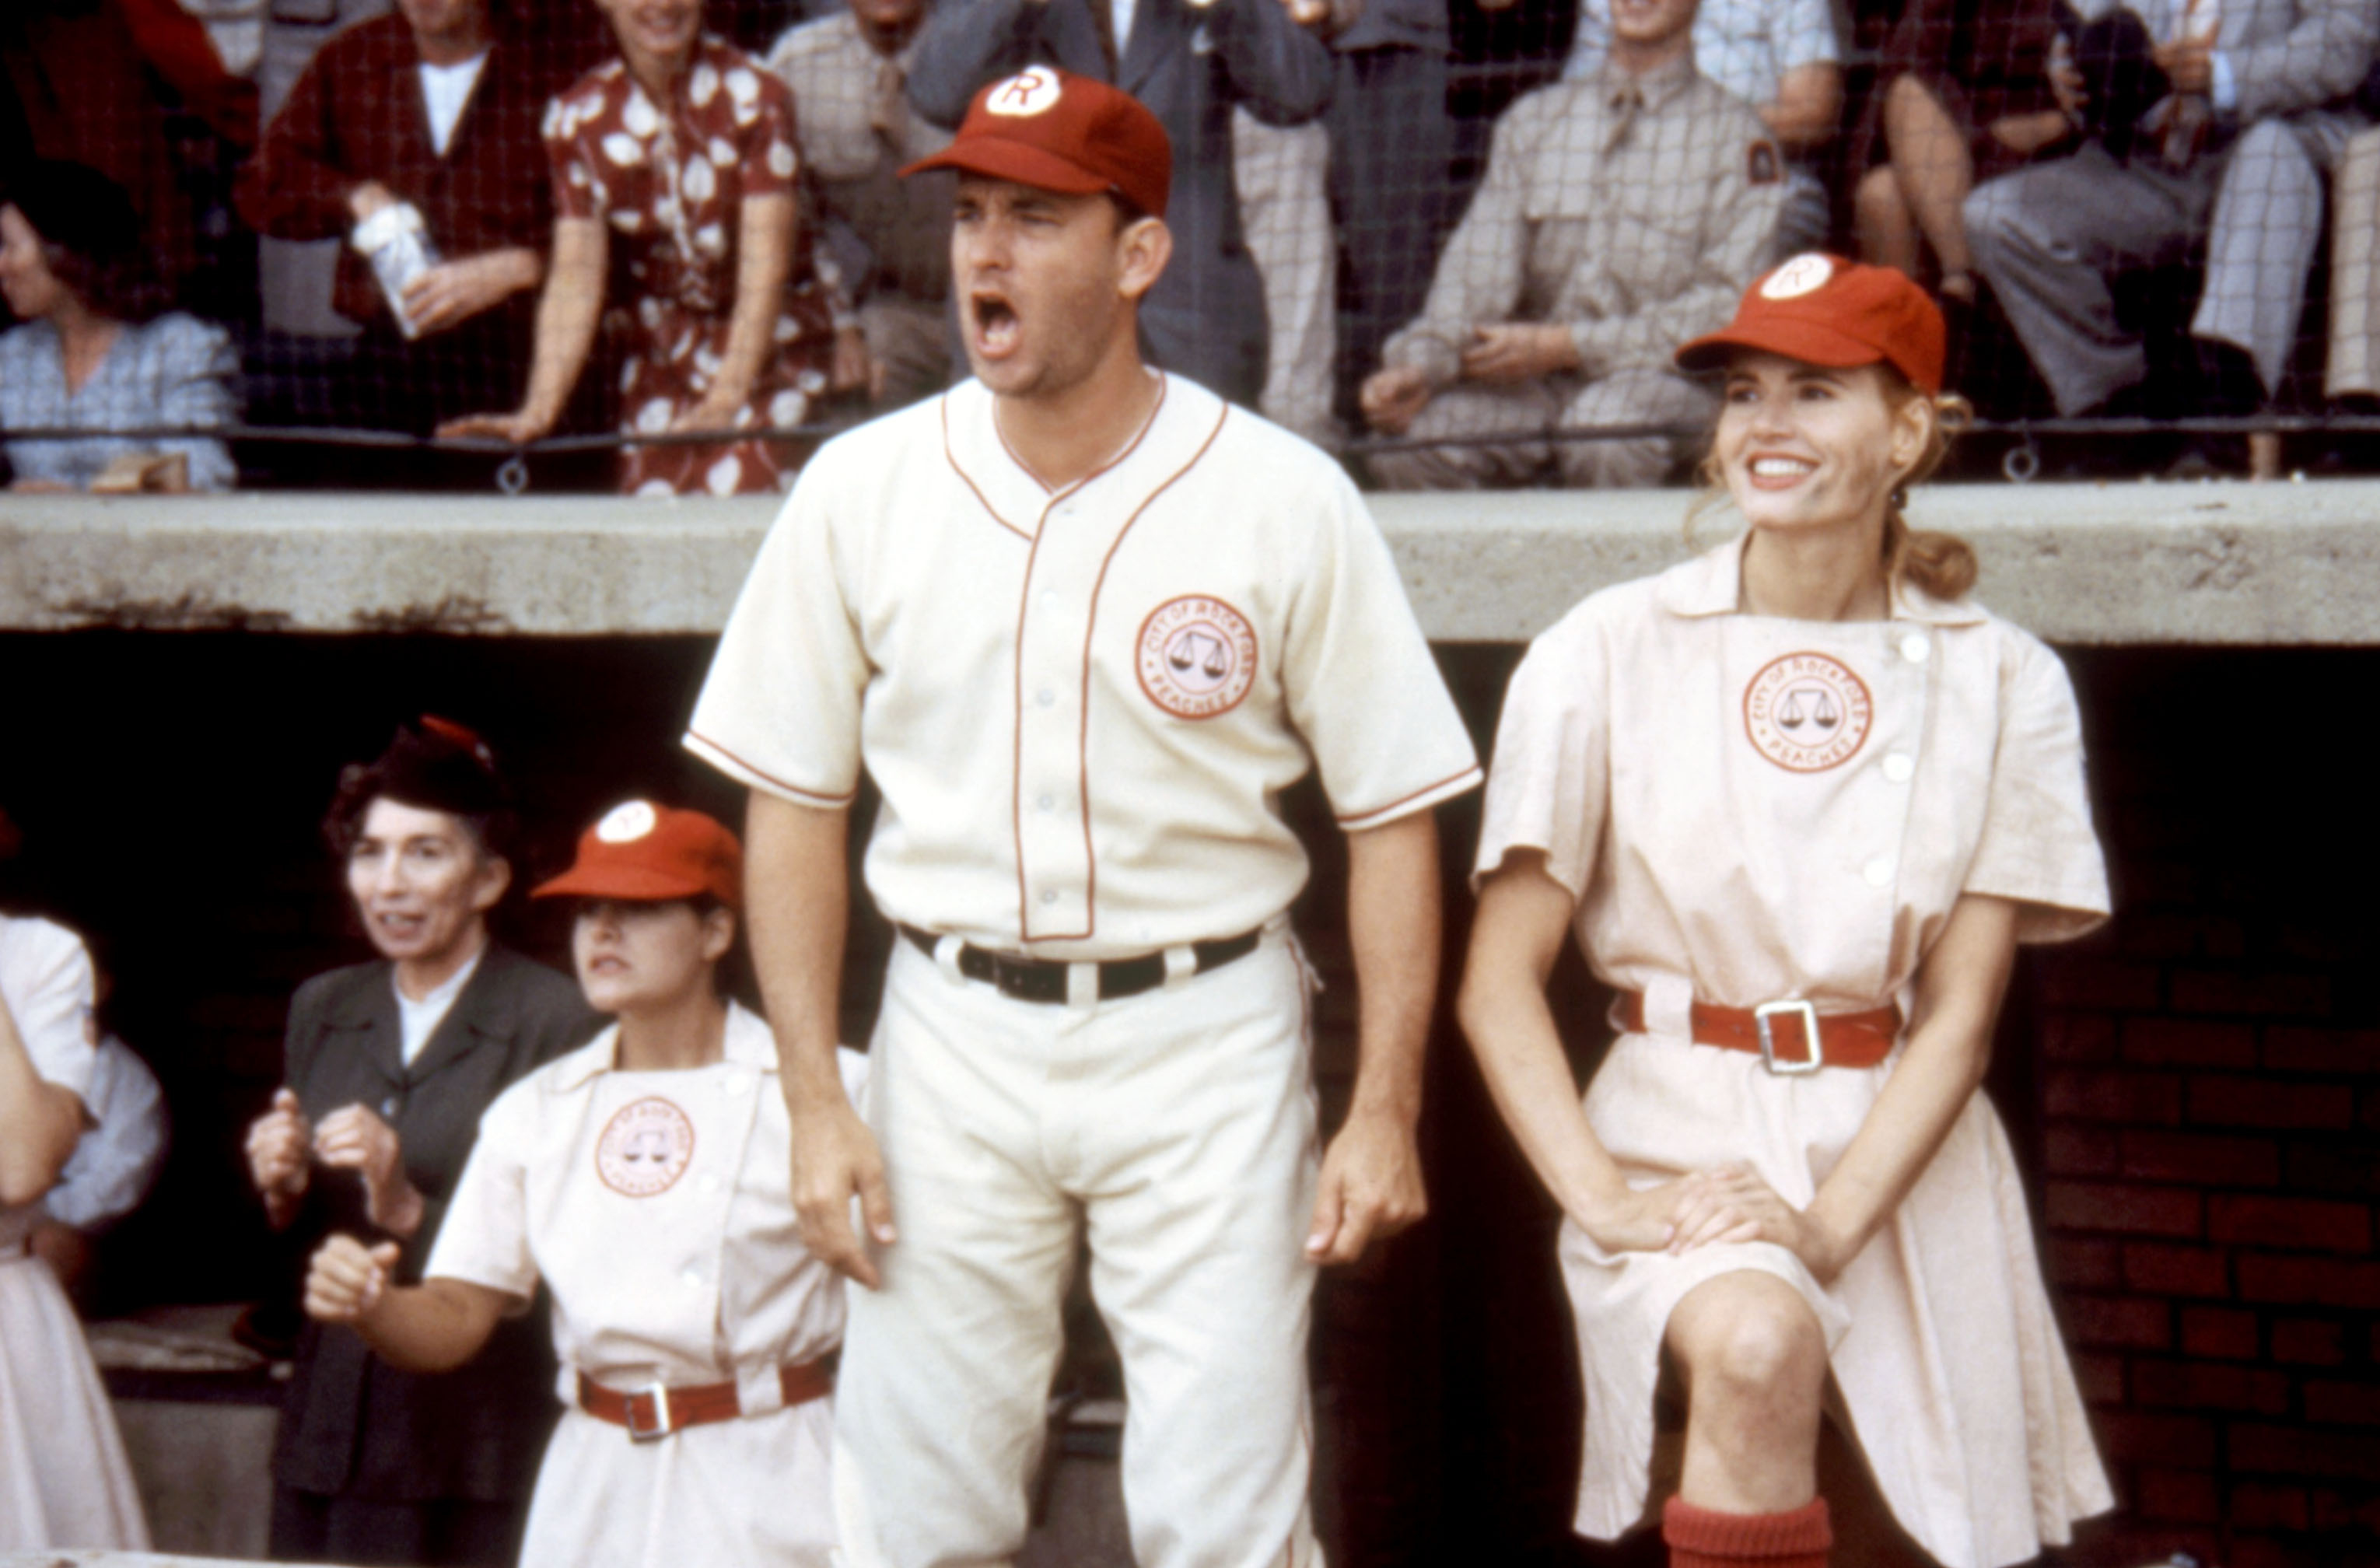 cf7baccb An 'A League of Their Own' series is in the works at Amazon, with 'Broad  City' star Abbi Jacobson on board to co-write the television reboot.